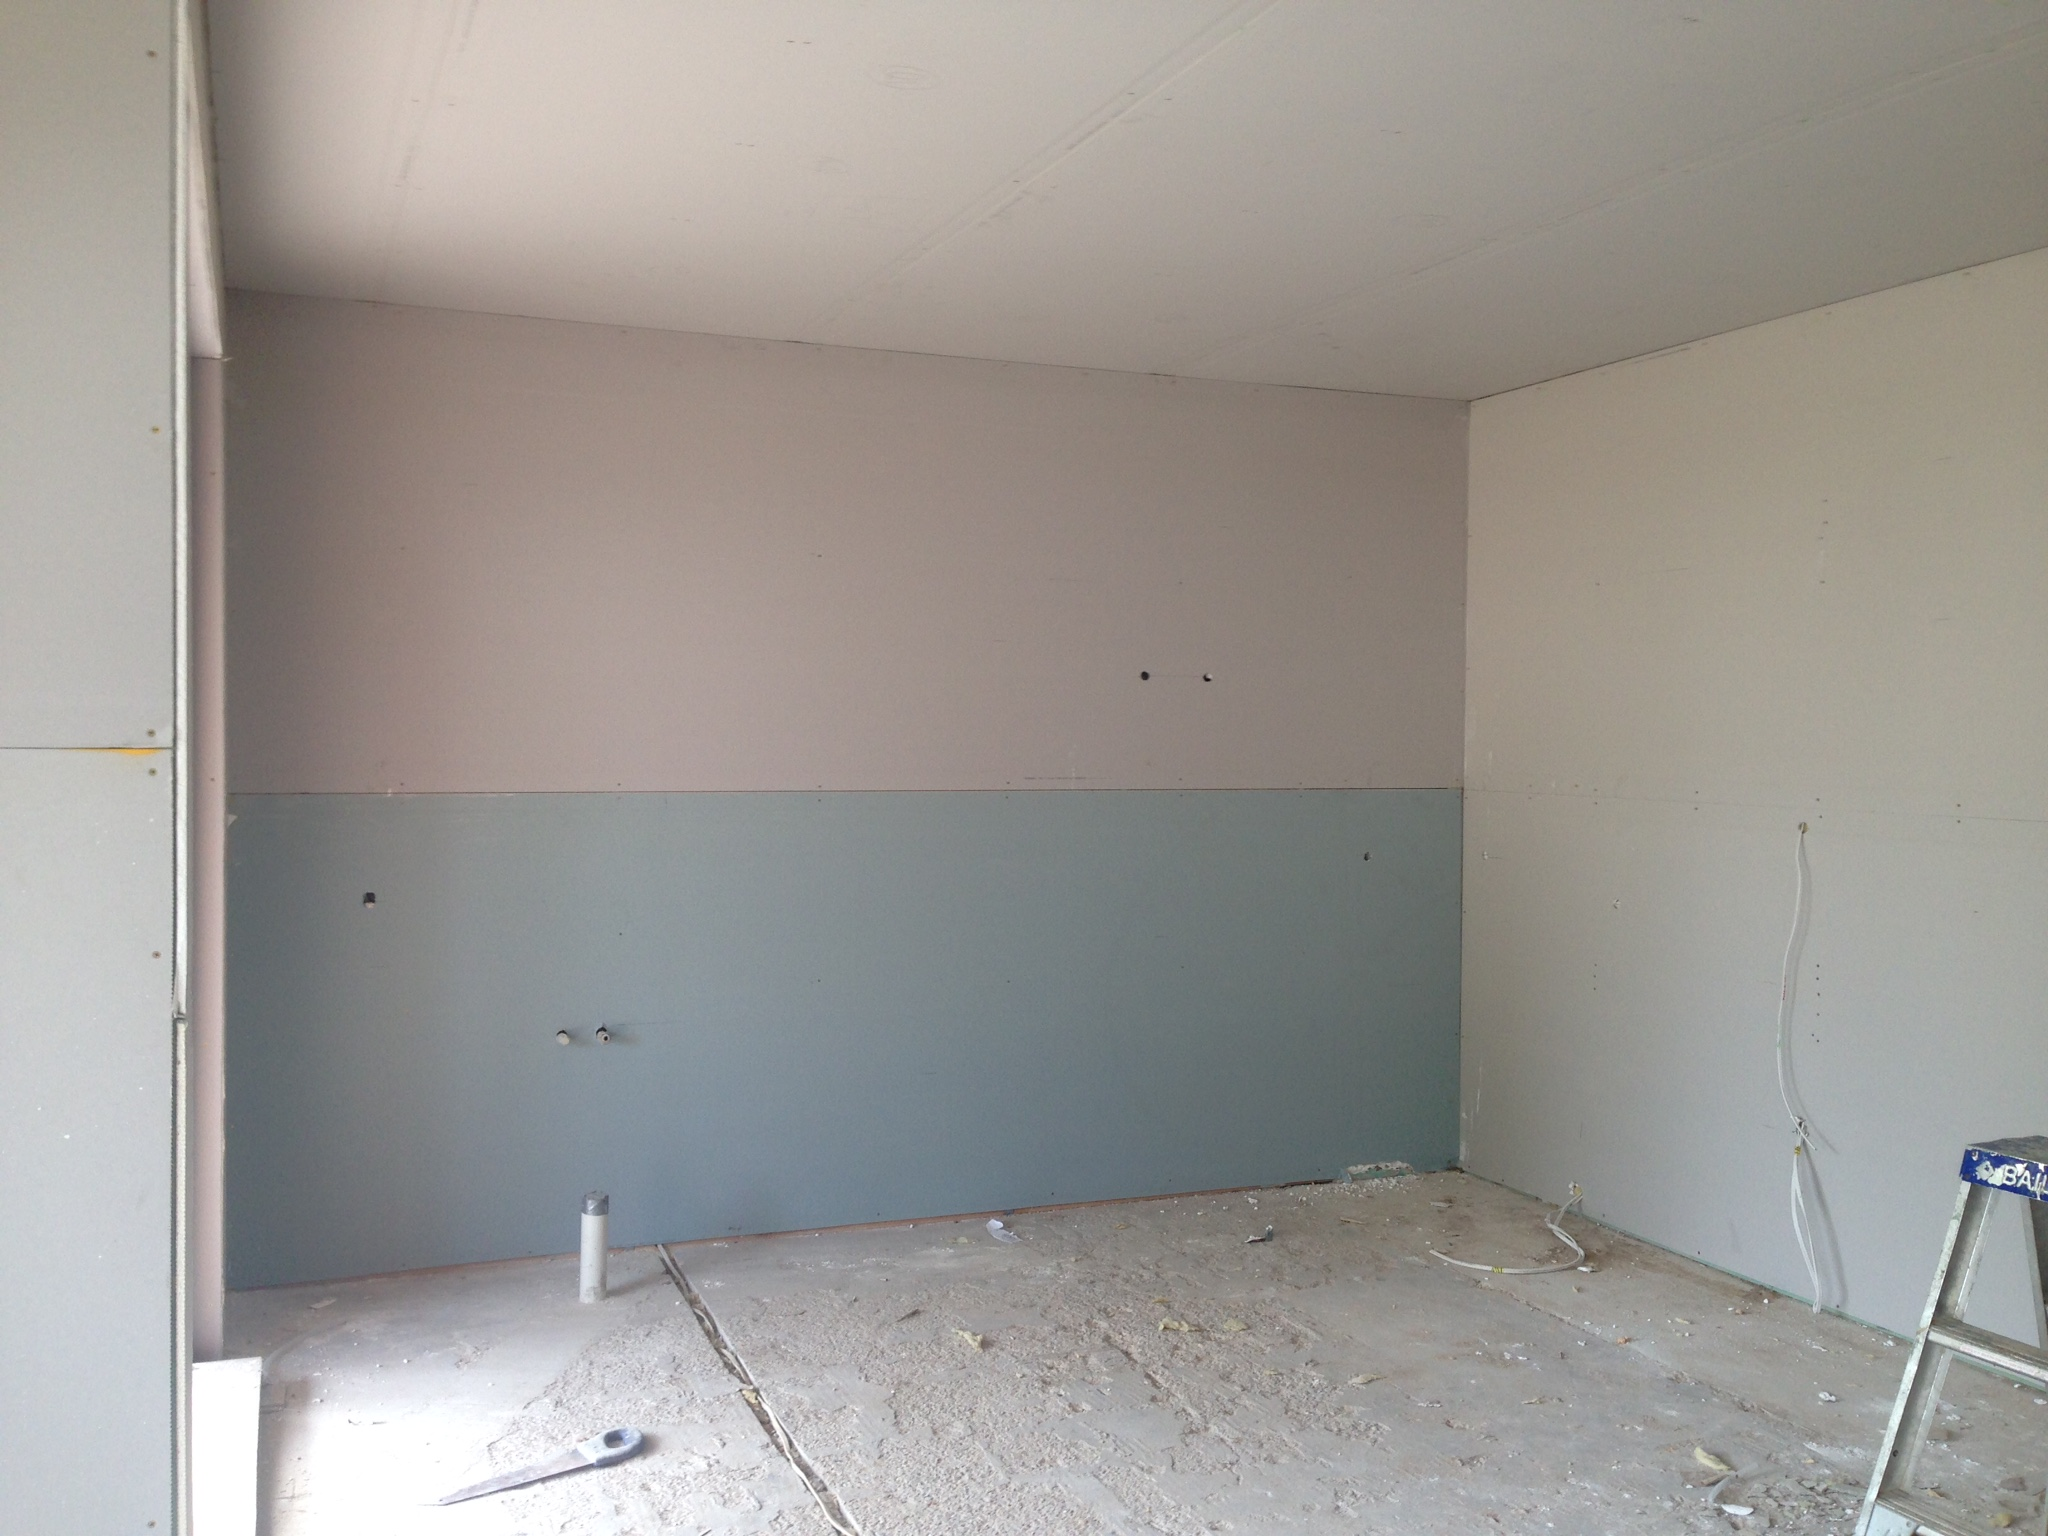 Kitchen void waiting to be filled with all that lovely veneer.